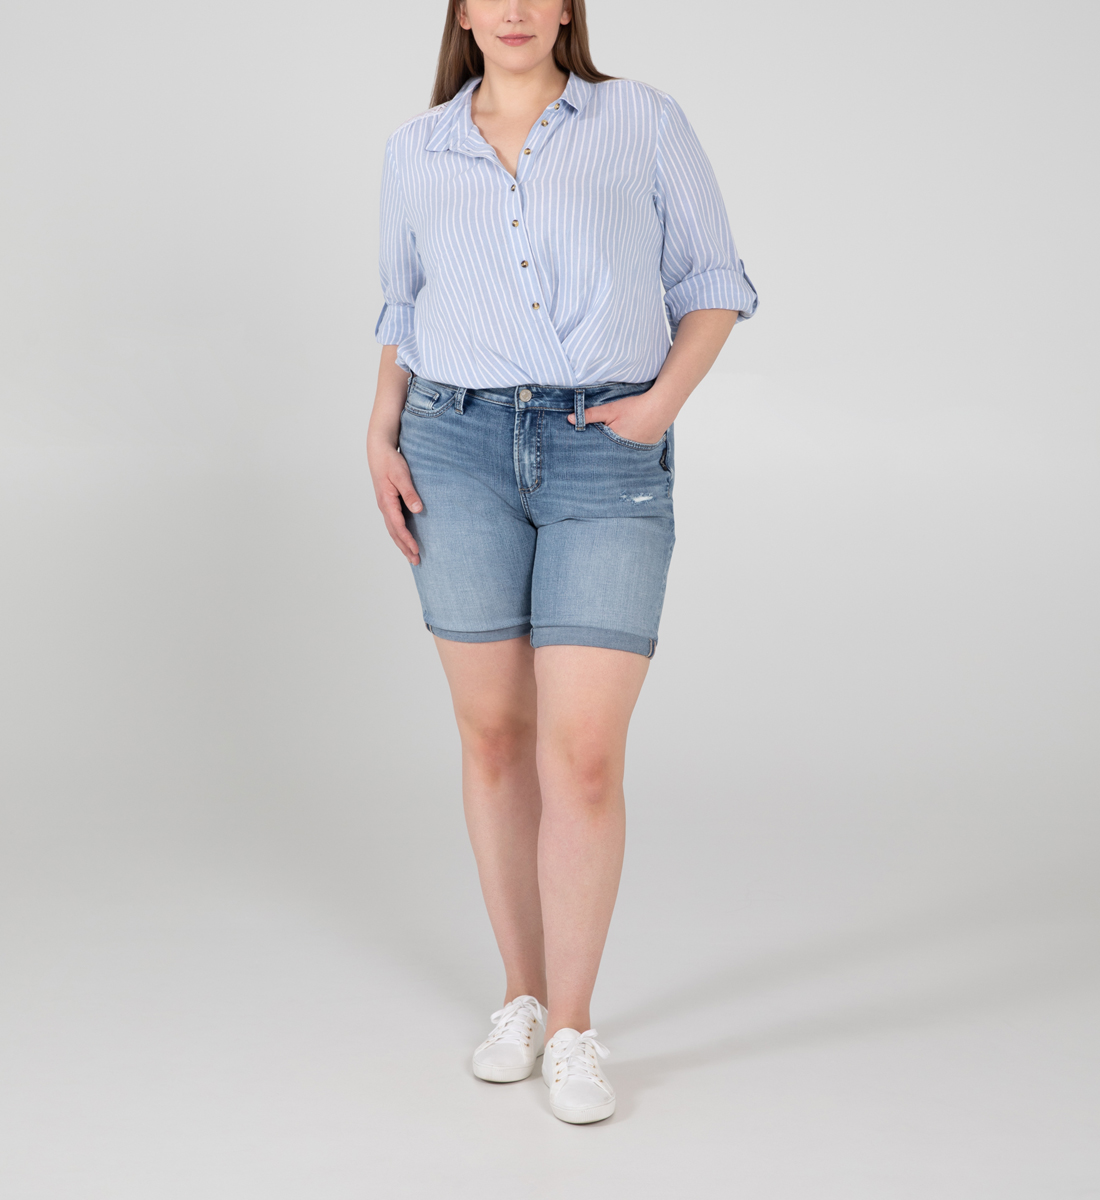 Silver Jeans Avery High Rise Bermuda Short Plus Size